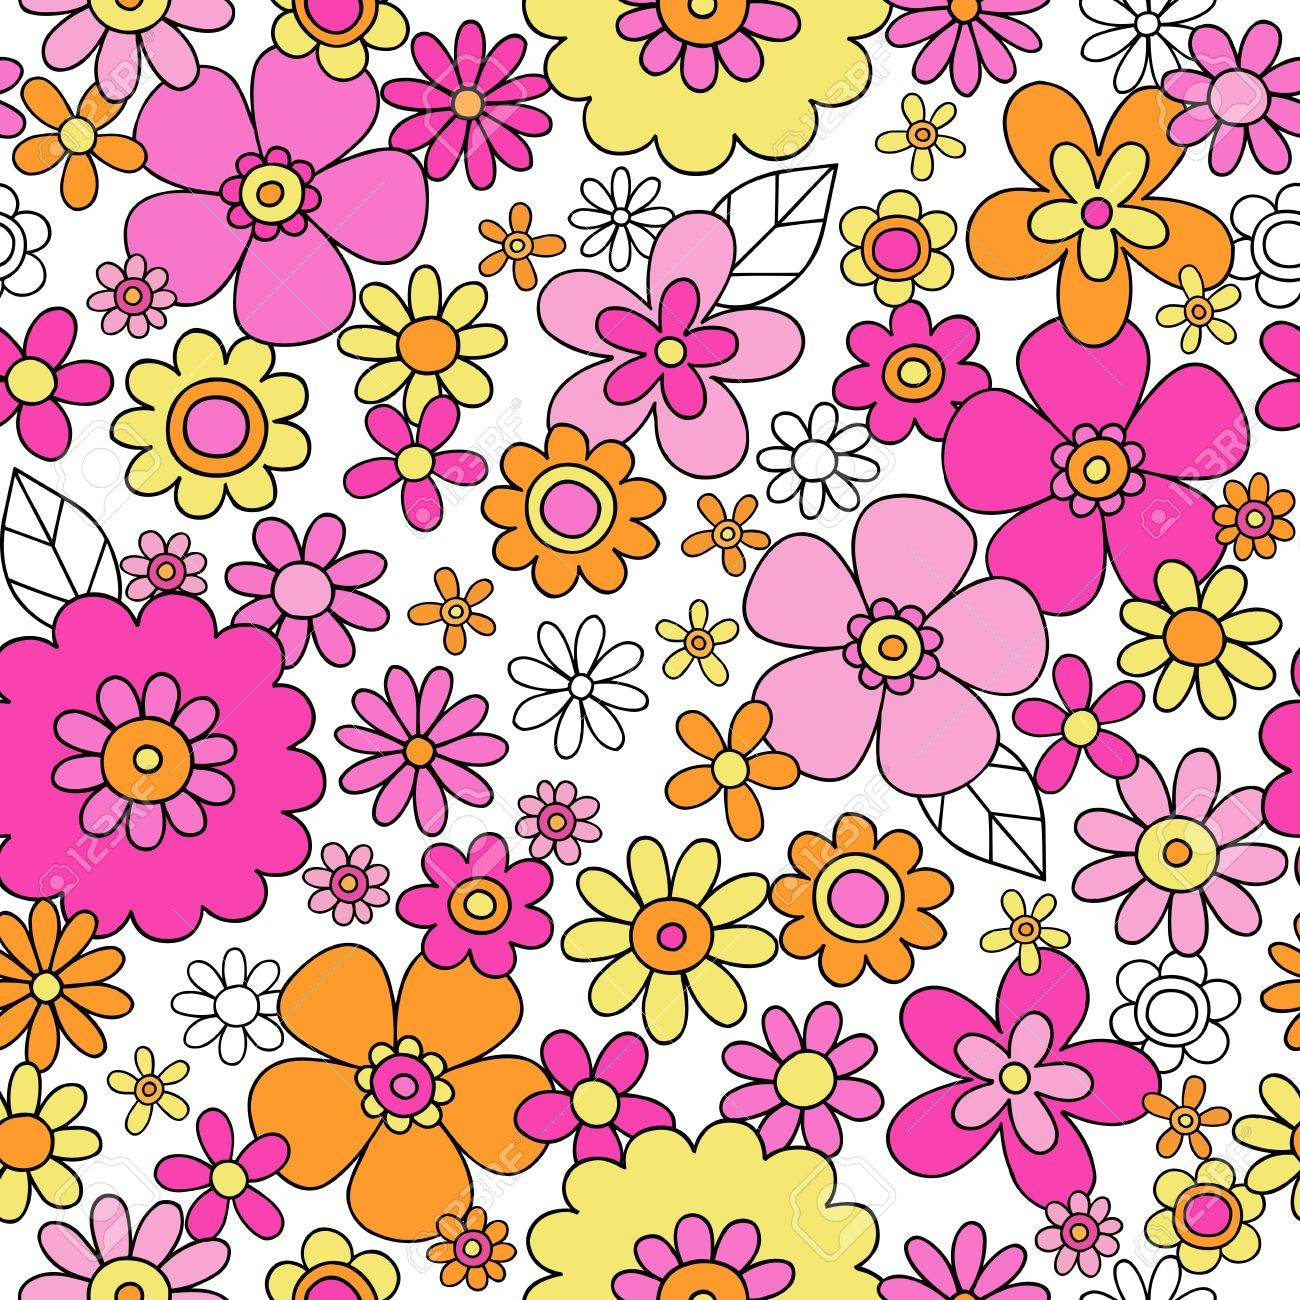 Flowers Seamless Pattern Groovy Hand-Drawn Doodle Vector Illustration Design Stock Vector - 15559582